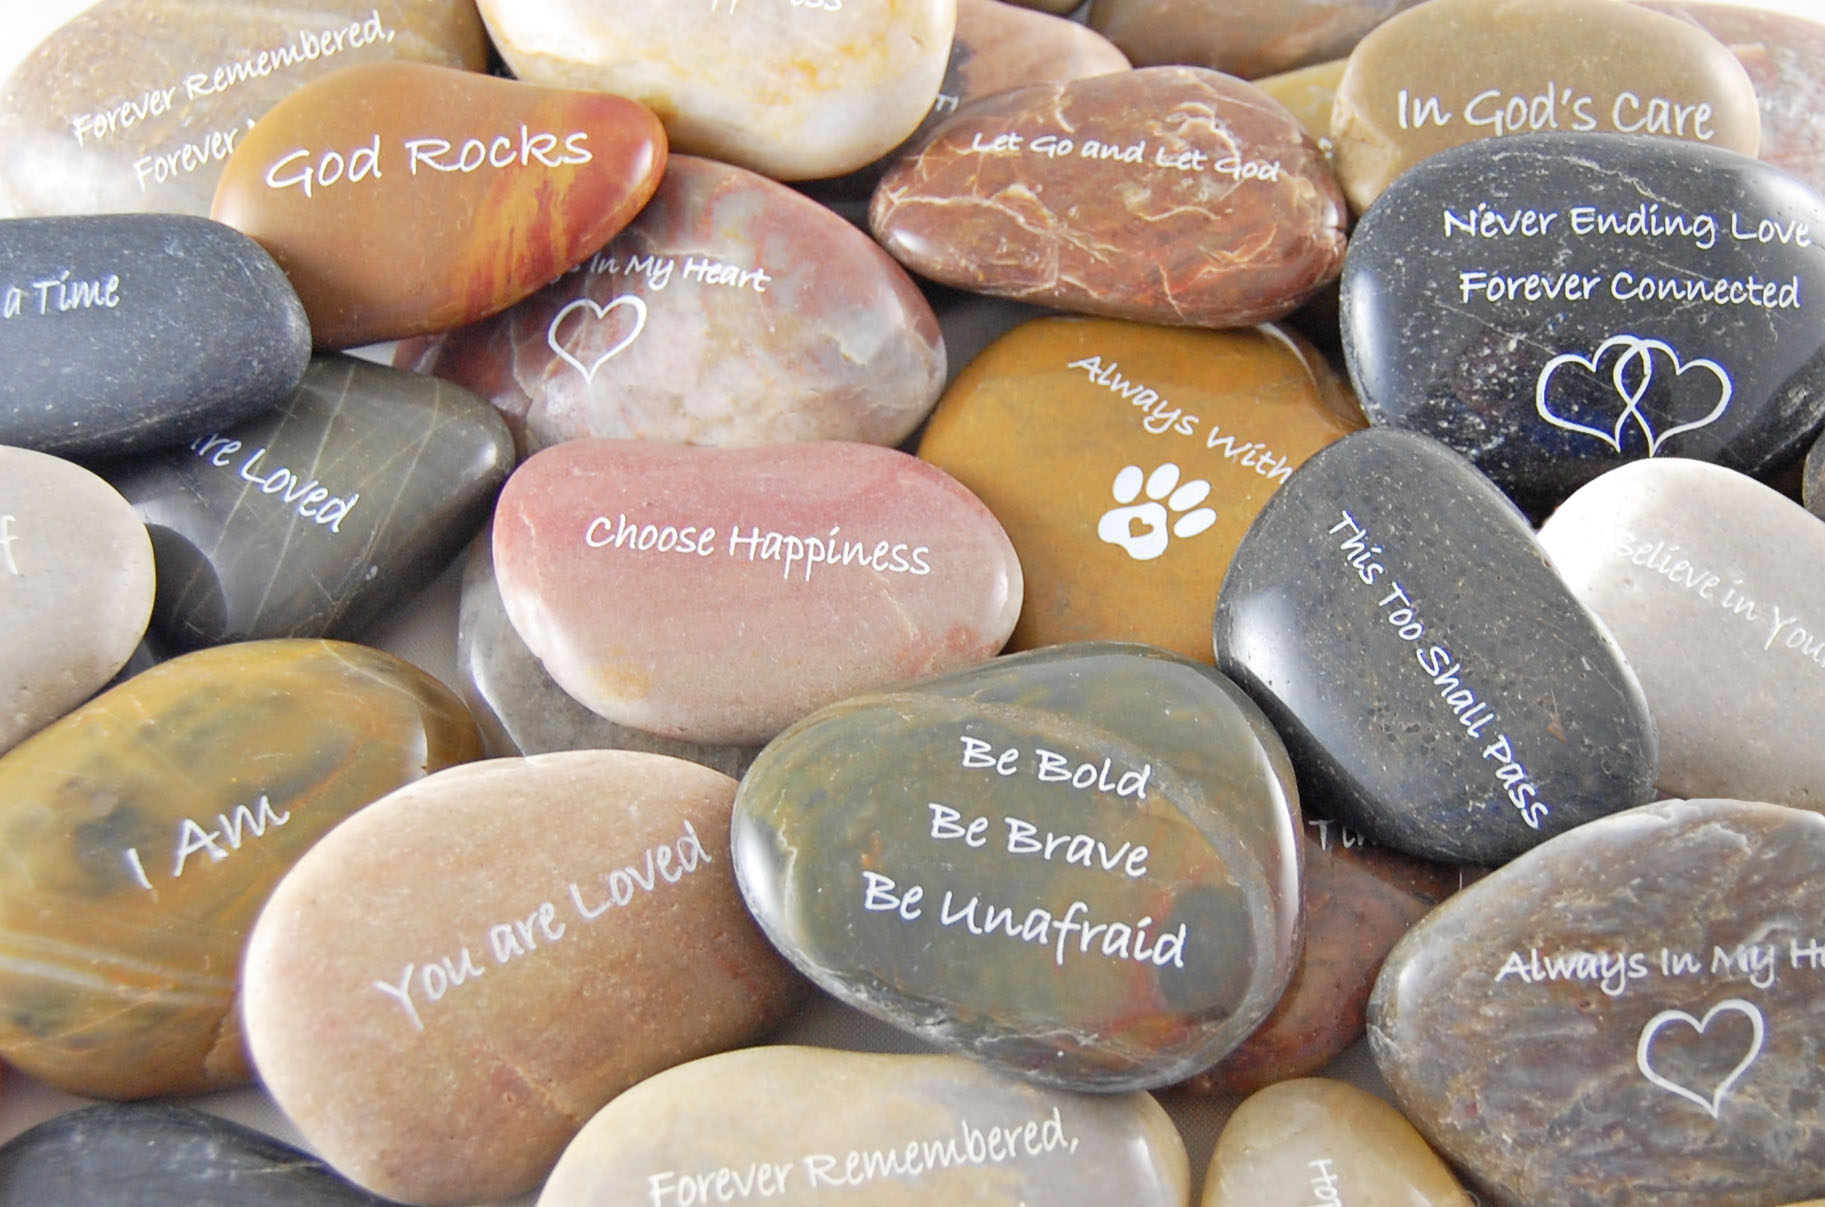 **Inspirational River Rocks - ENGRAVED - SOLD INDIVIDUALLY**